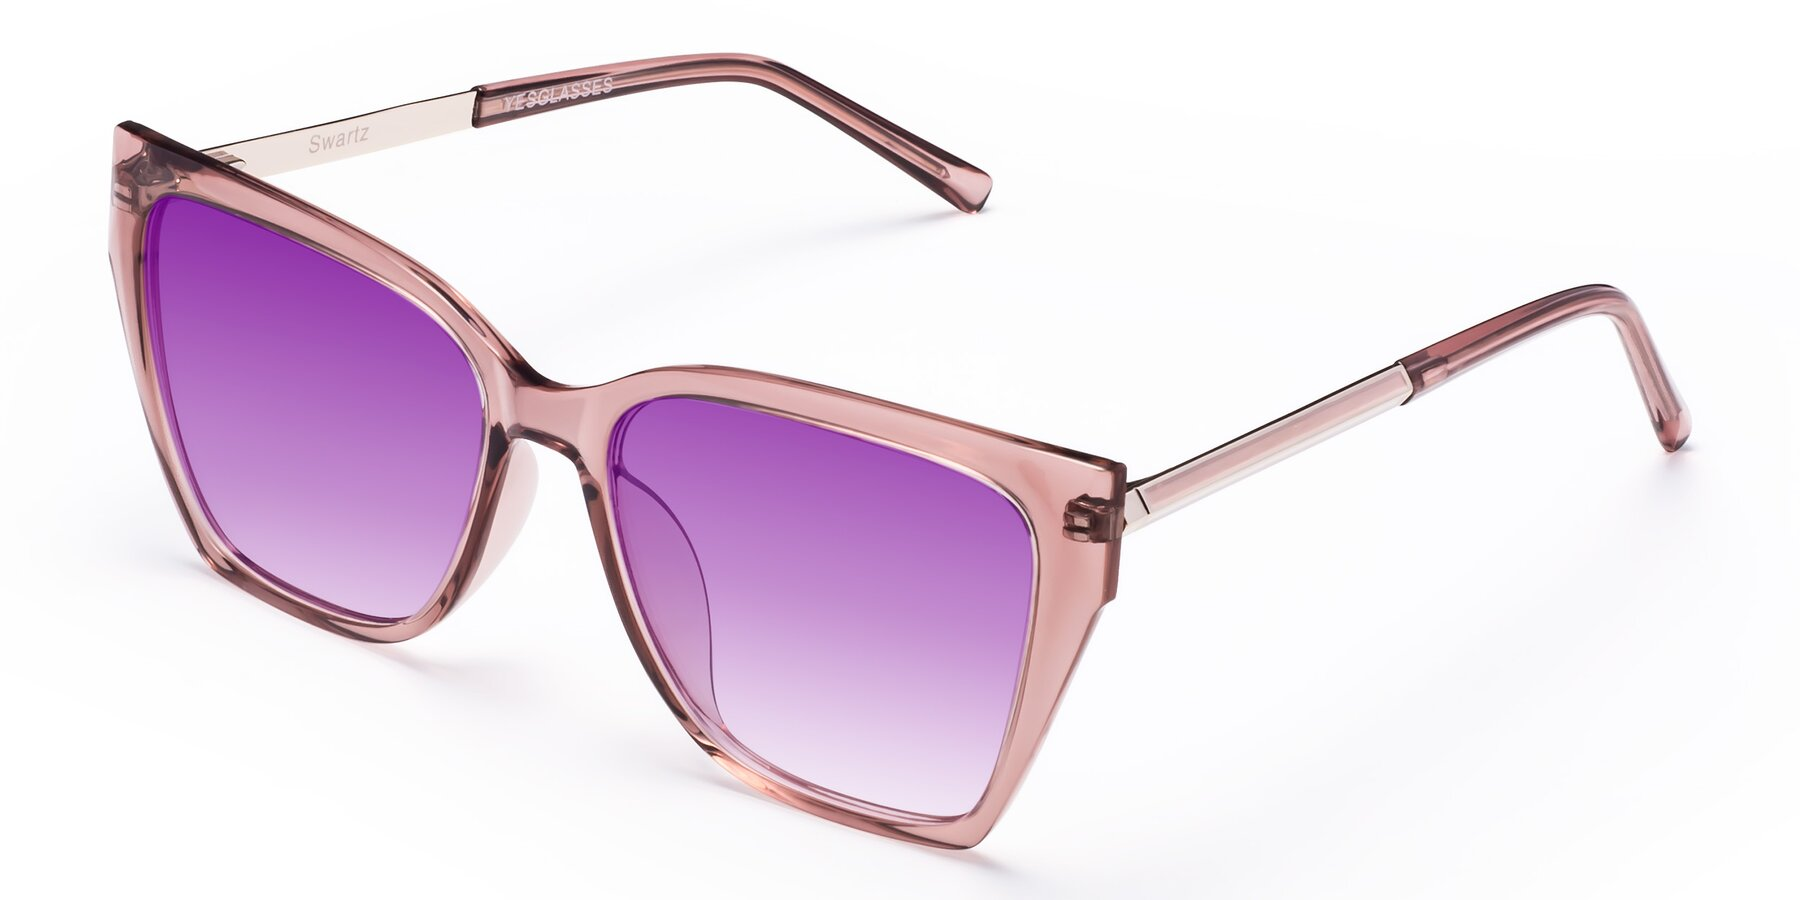 Angle of Swartz in Grape with Purple Gradient Lenses